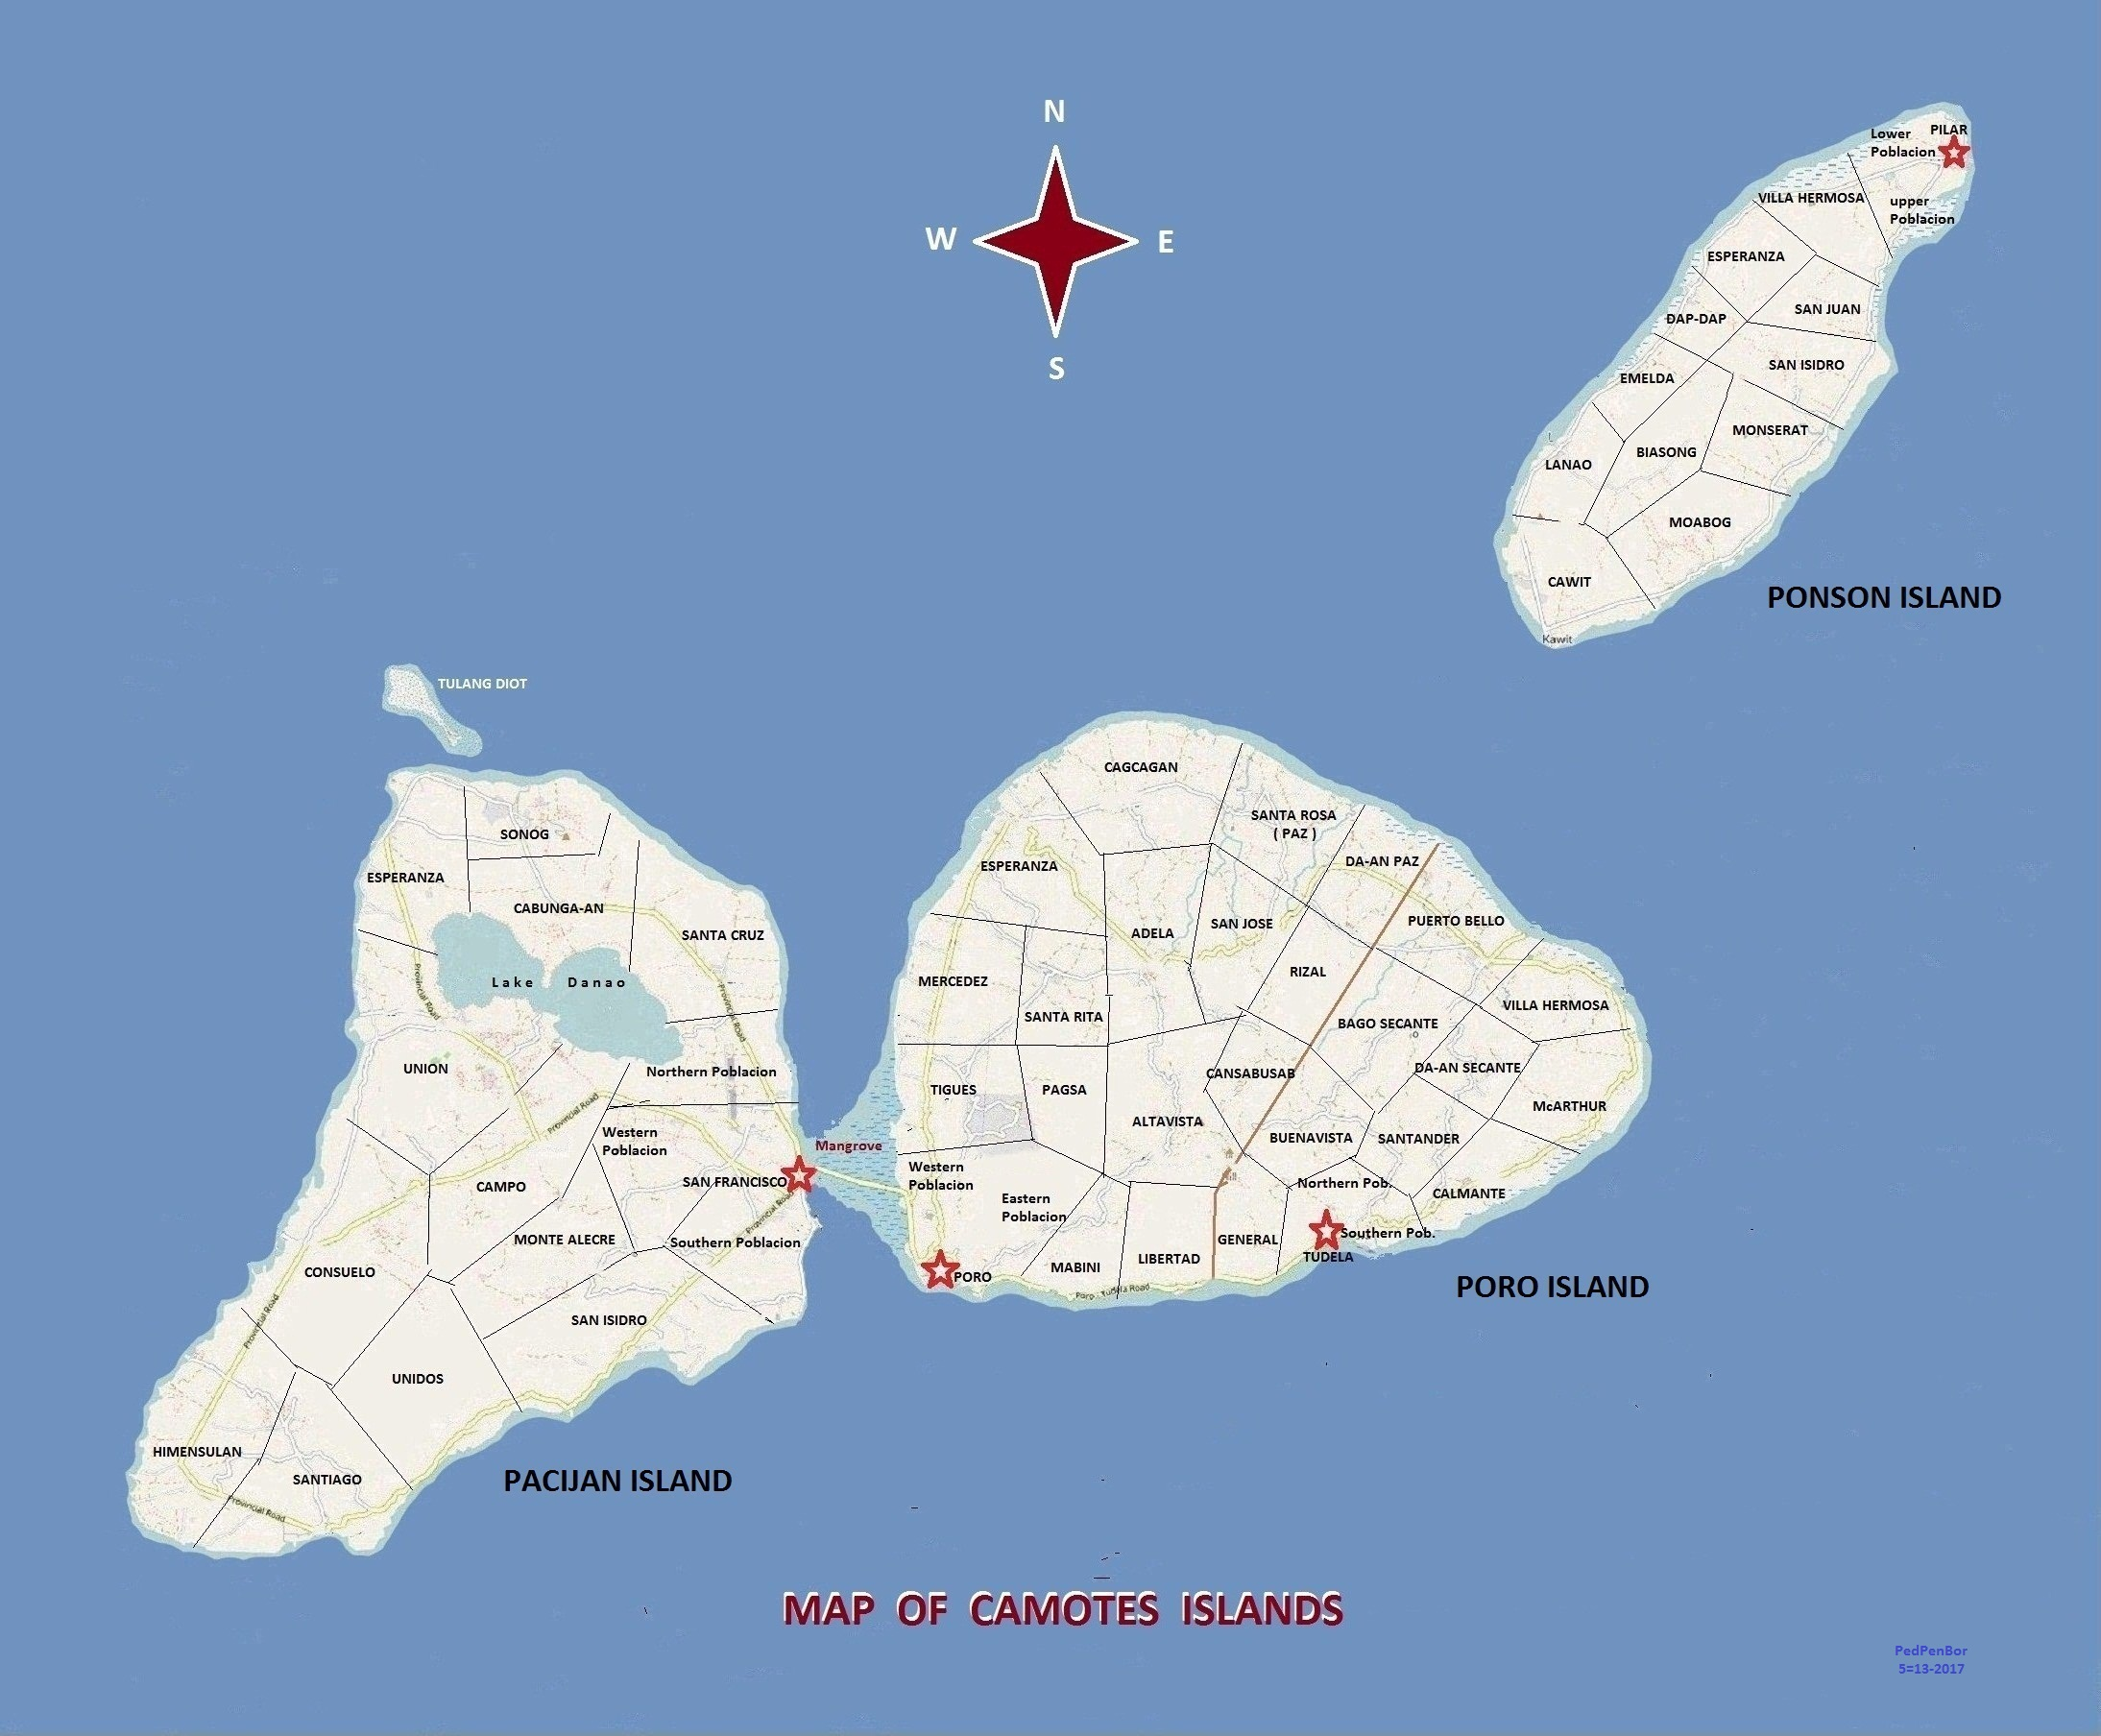 Map of Camotes Islands